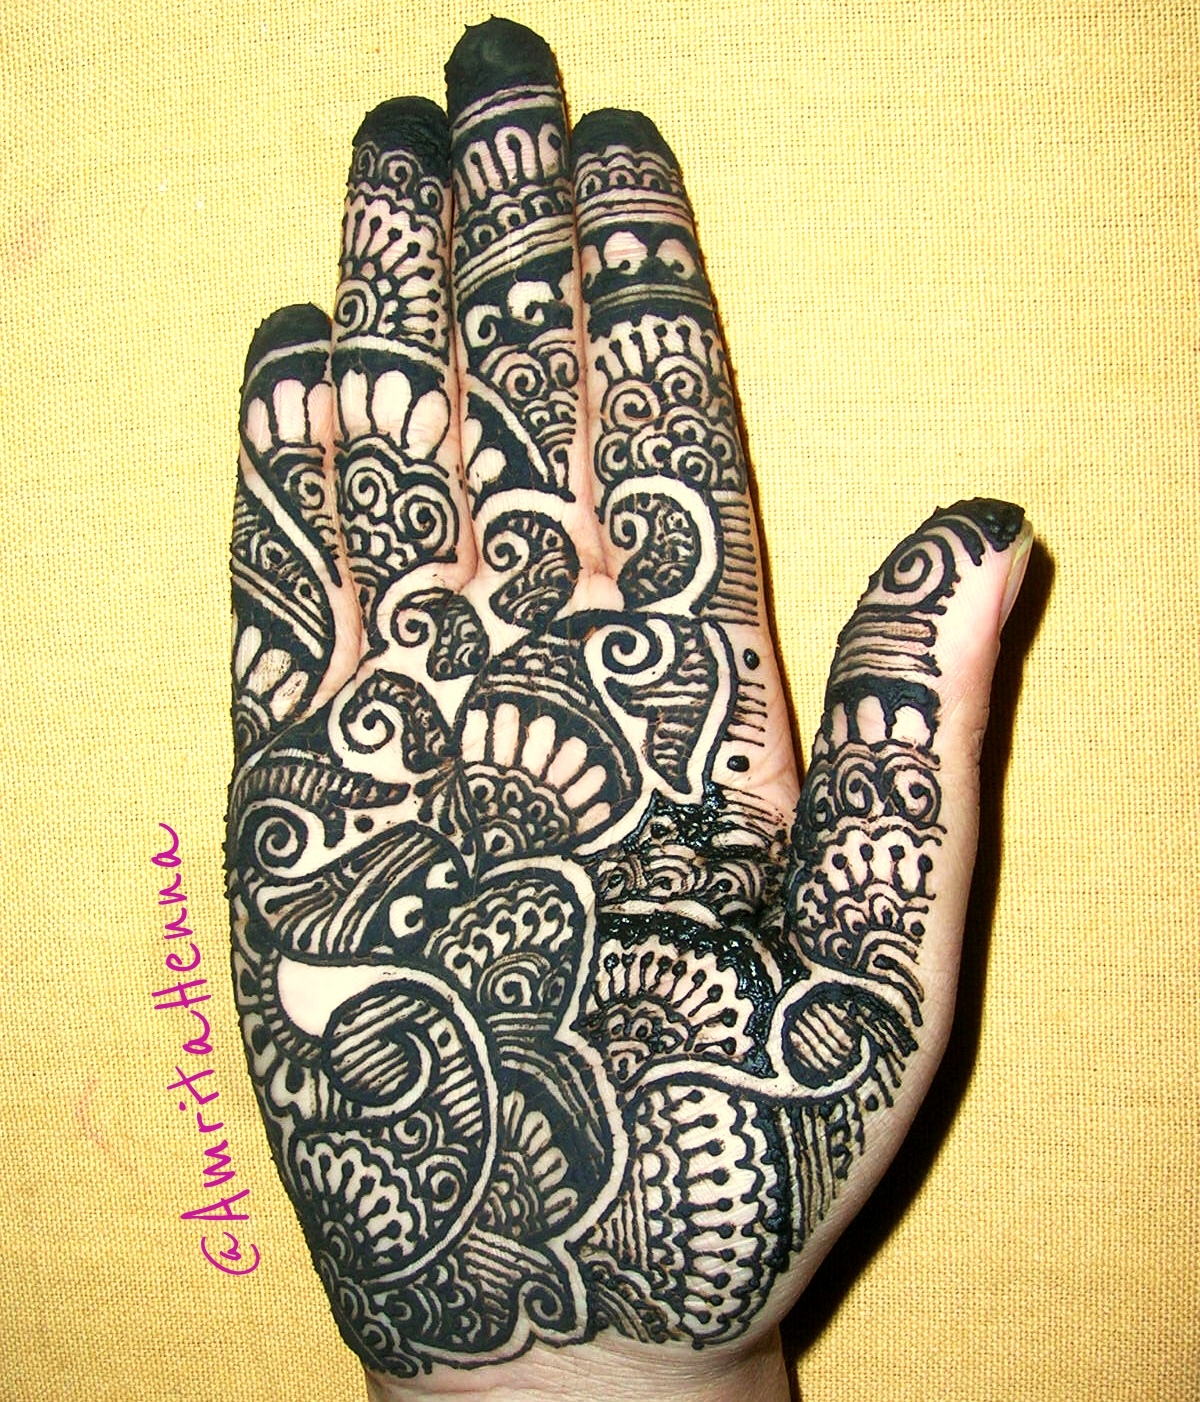 Top 10 Full Hand Henna Designs - 10 Best Mehndi Designs Full Hands for Indian Weddings - 10 Stunning Full Hand Bridal Henna Designs - Indian Weddings Full Hand Mehendi Designs - 10 Full Hand Henna Mehndi Designs You Must Try this Wedding Season - Full Hand Mehndi Designs for this Wedding Season - 10 Most Popular Full Hand Henna Tattoo Designs for a Bridal Sangeet Party - Full Henna Hands Mehendi Designs - Top 10 Full Henna Hand Designs